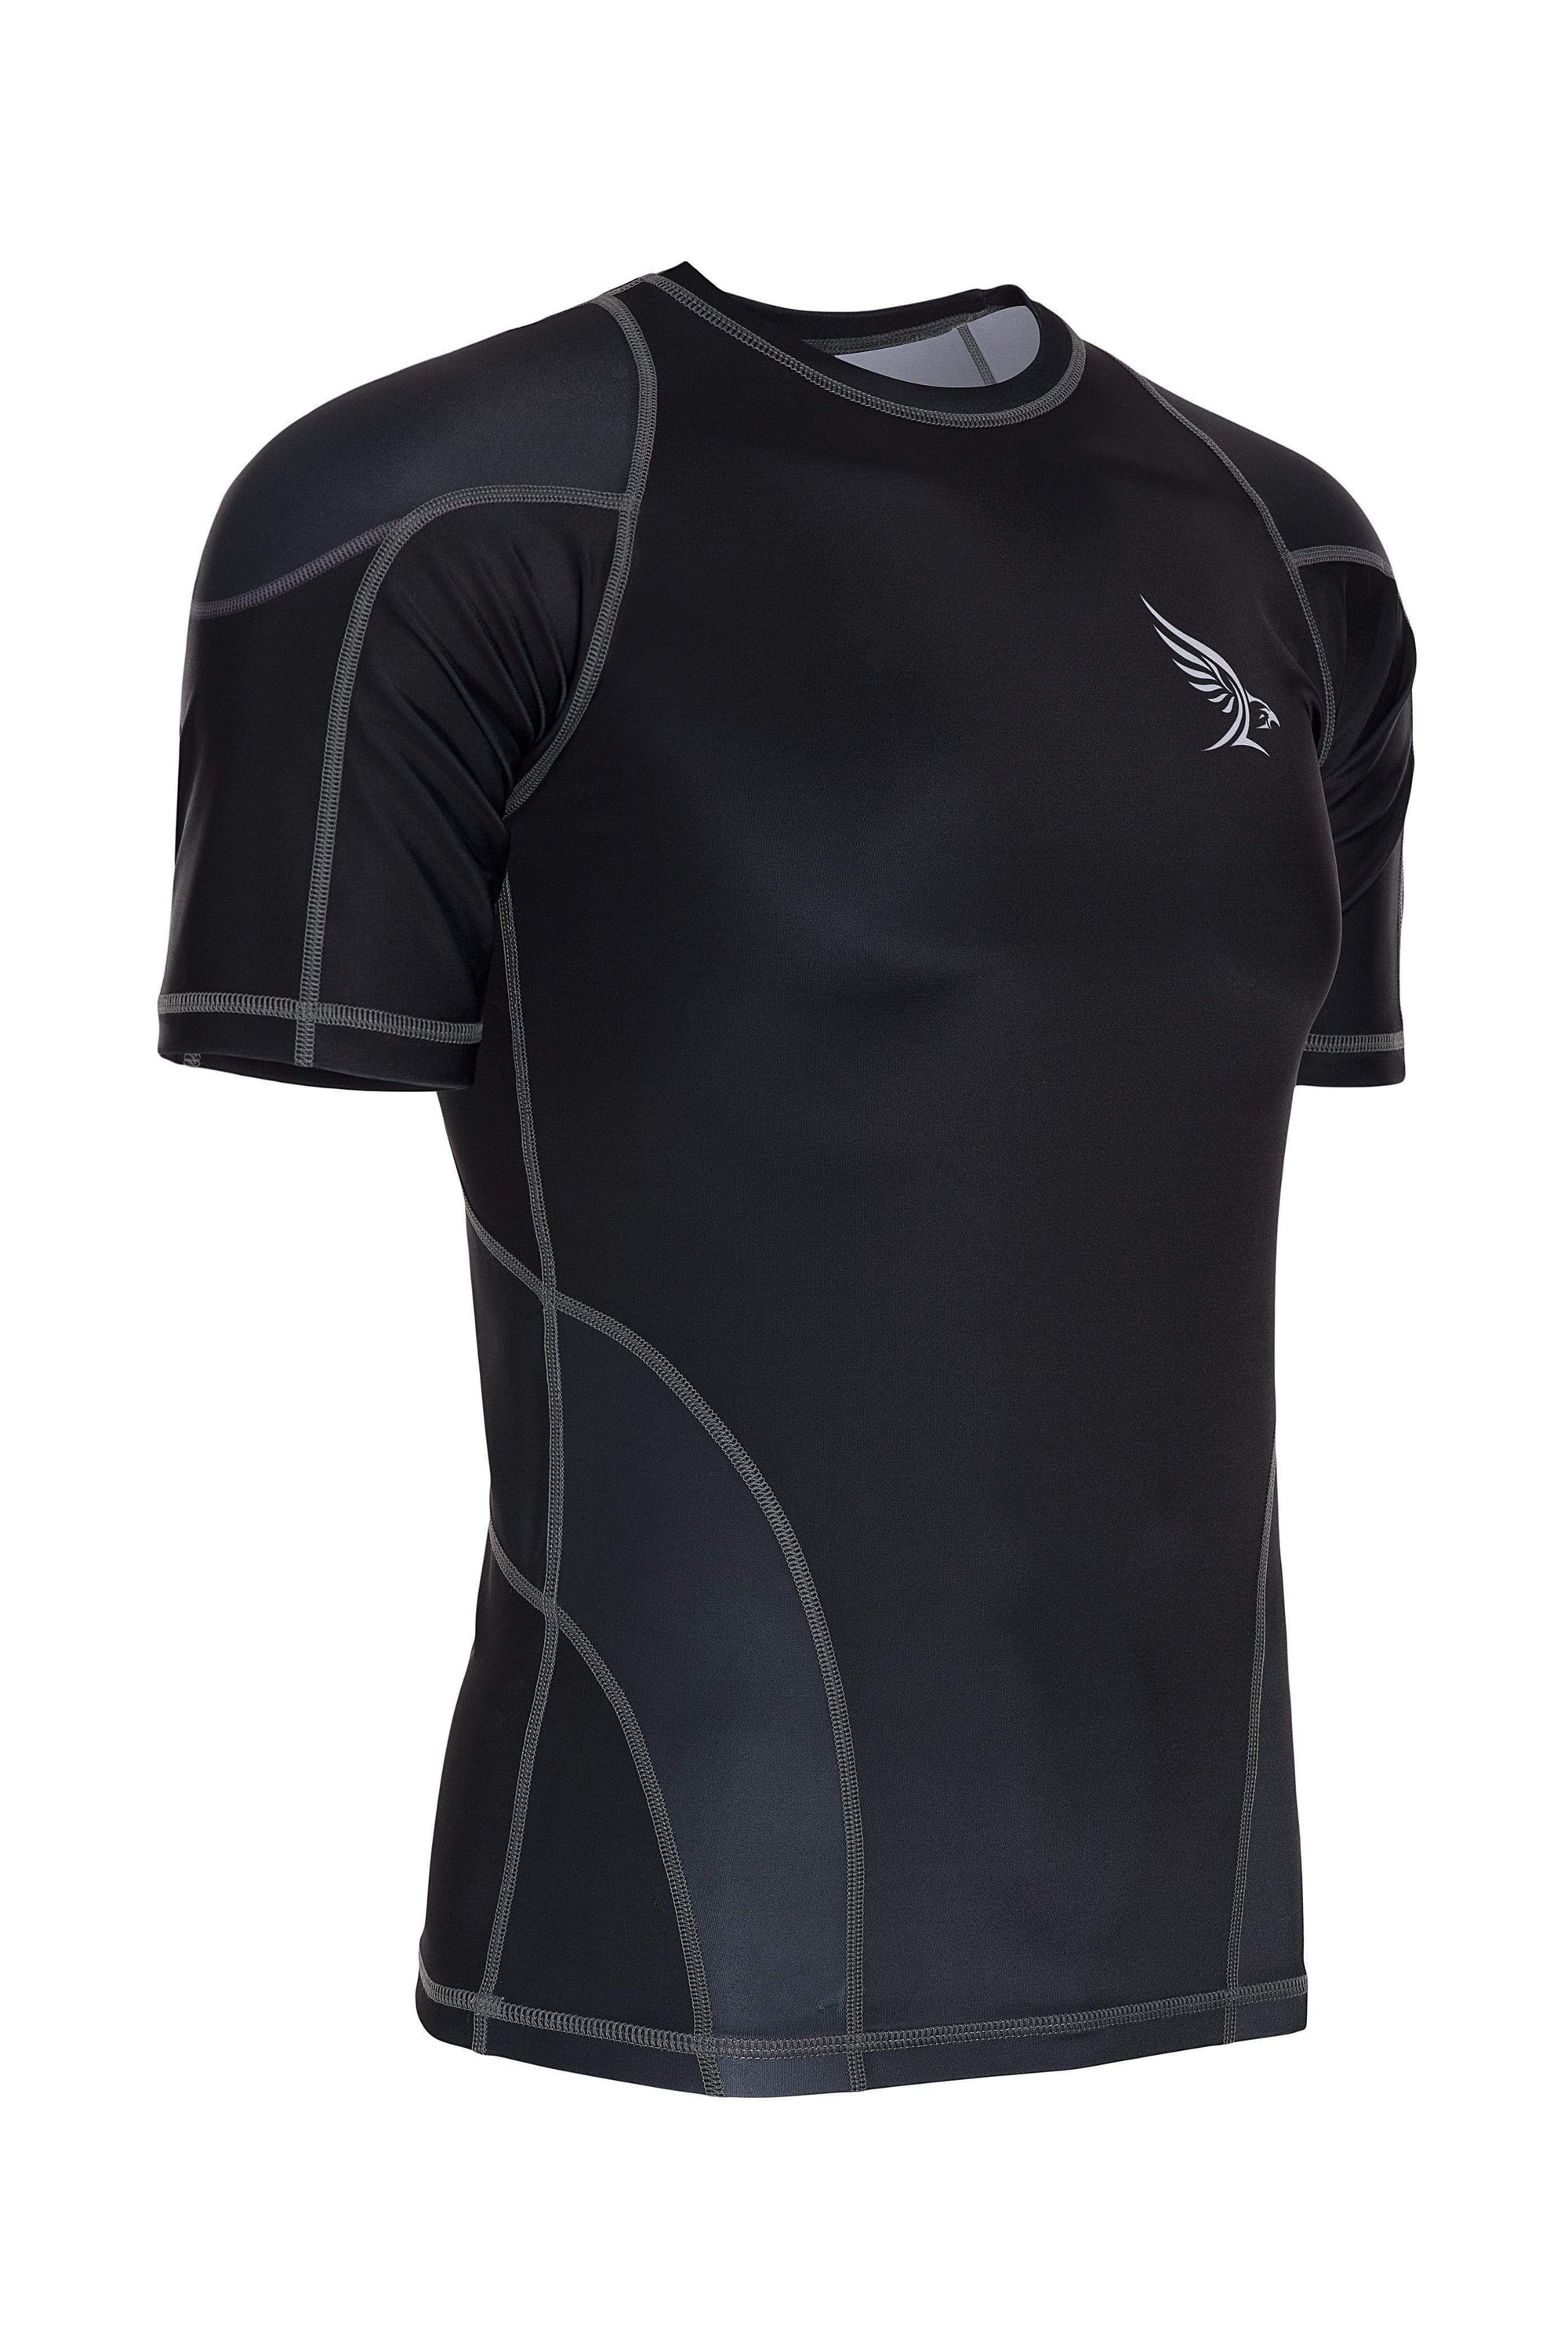 Habrok Rash Guard S / BLACK Pugnator 2.0 | Rash Guard | Half Sleeve 680334795355